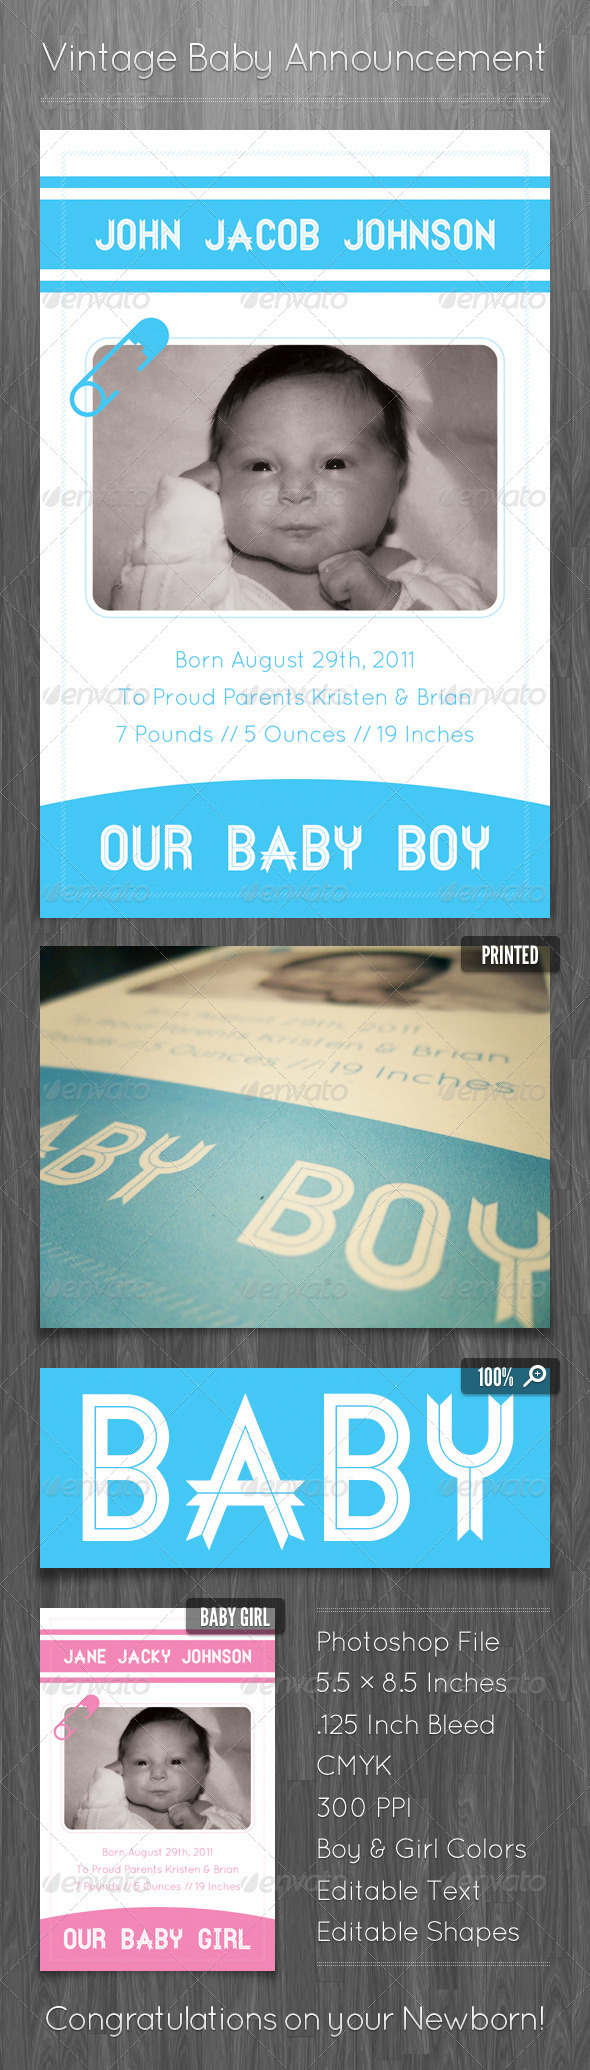 Vintage Baby Announcement Template - Family Cards & Invites